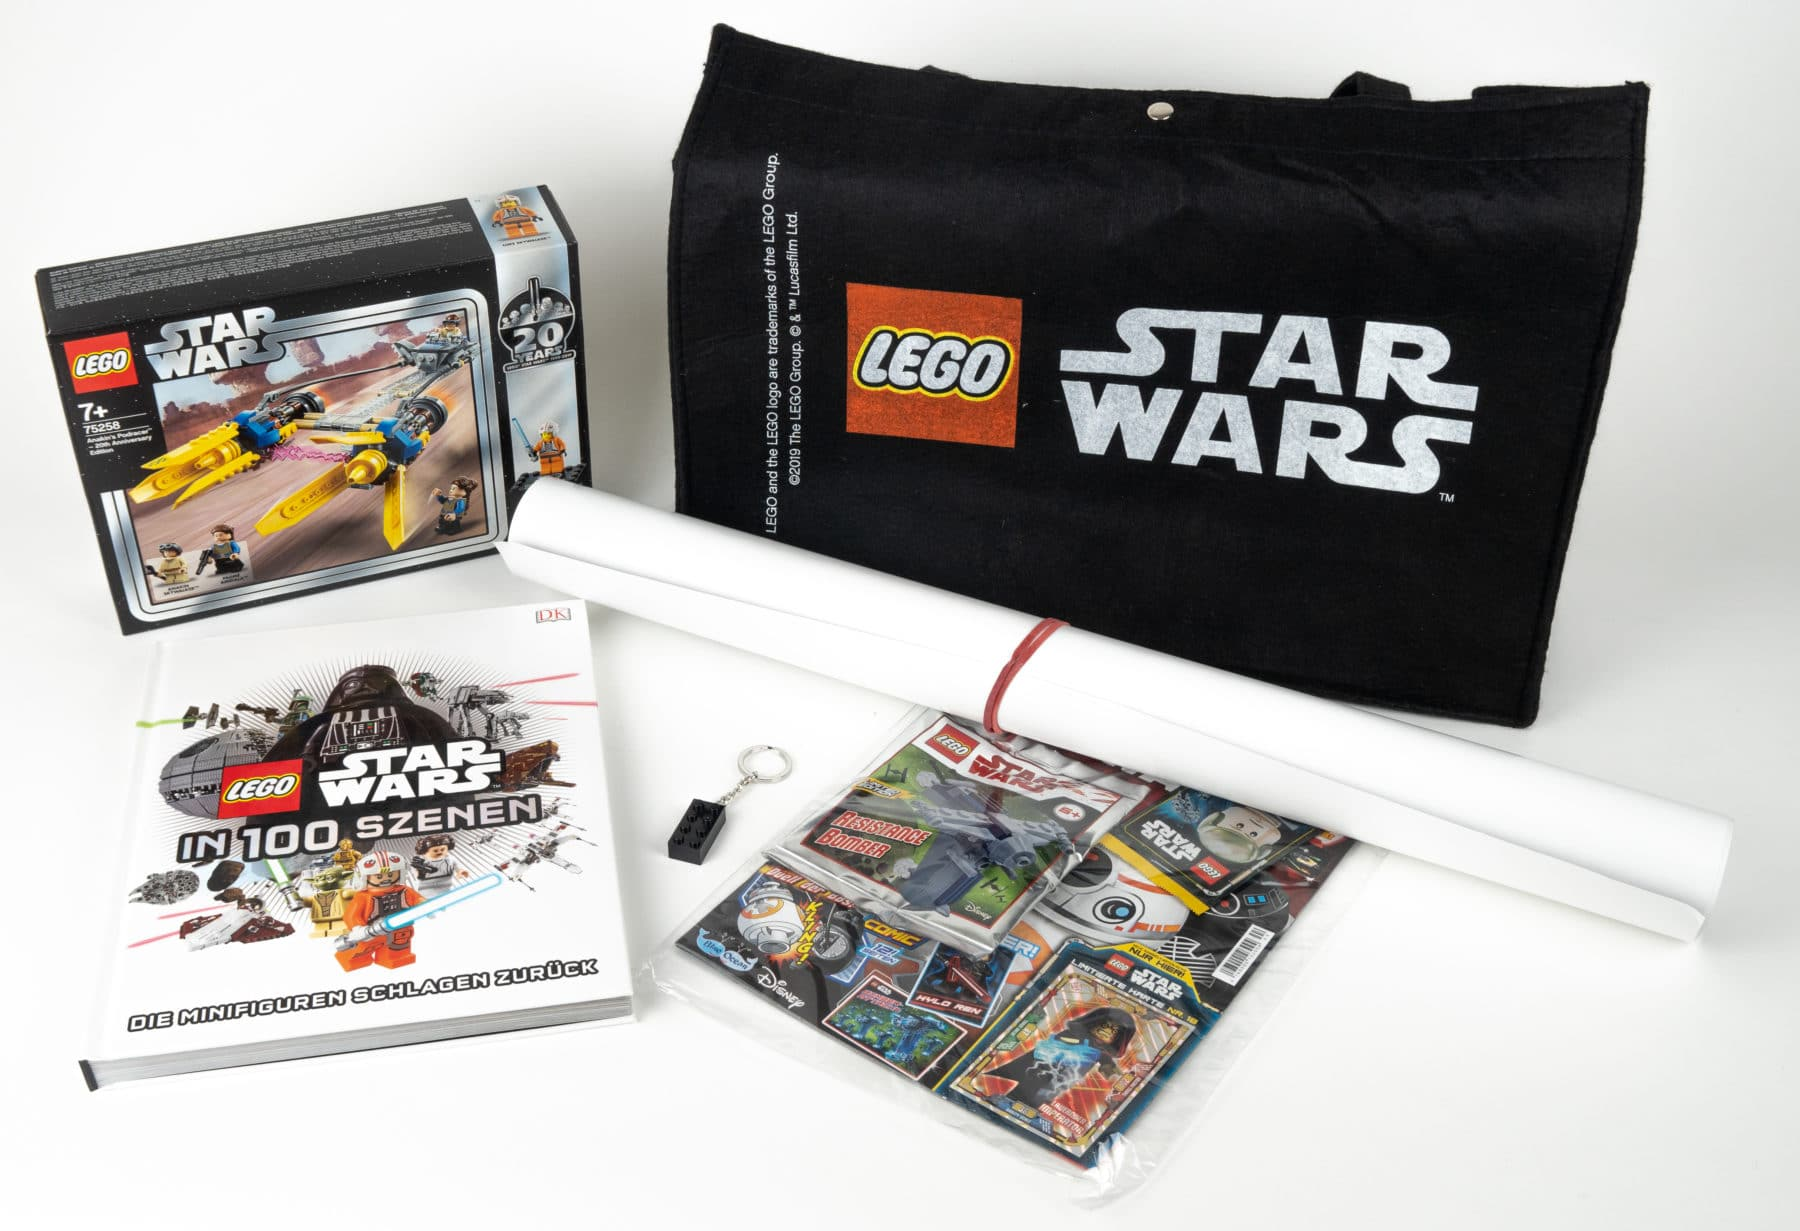 LEGO Star Wars Event München Goodie Bag